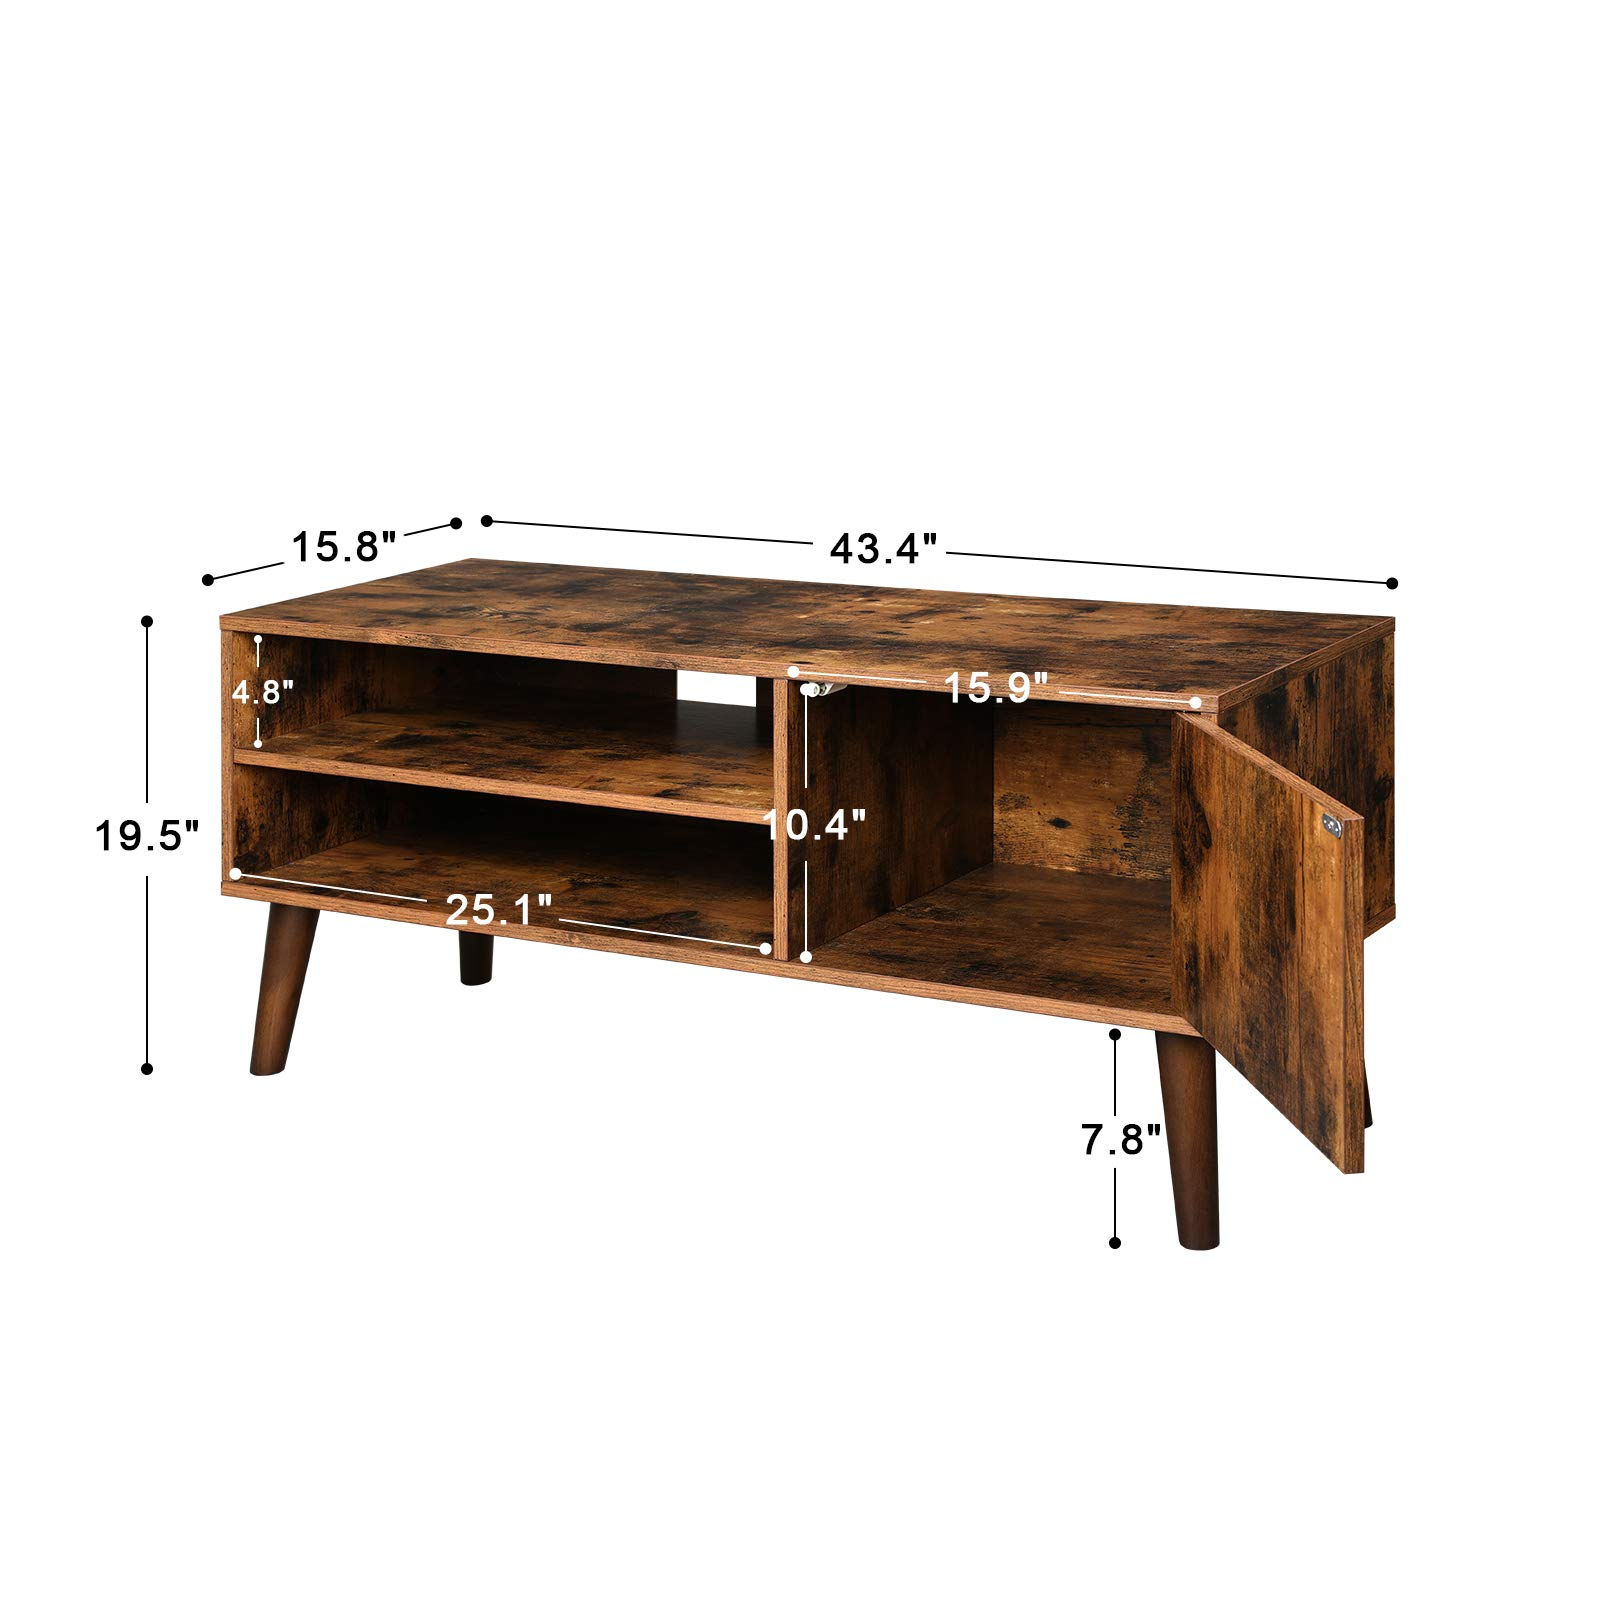 VASAGLE Retro TV Stand, TV Console, Mid-Century Modern Entertainment Center for Flat Screen TV Cable Box Gaming Consoles, in Living Room Entertainment Room Office ULTV09BX by VASAGLE (Image #7)